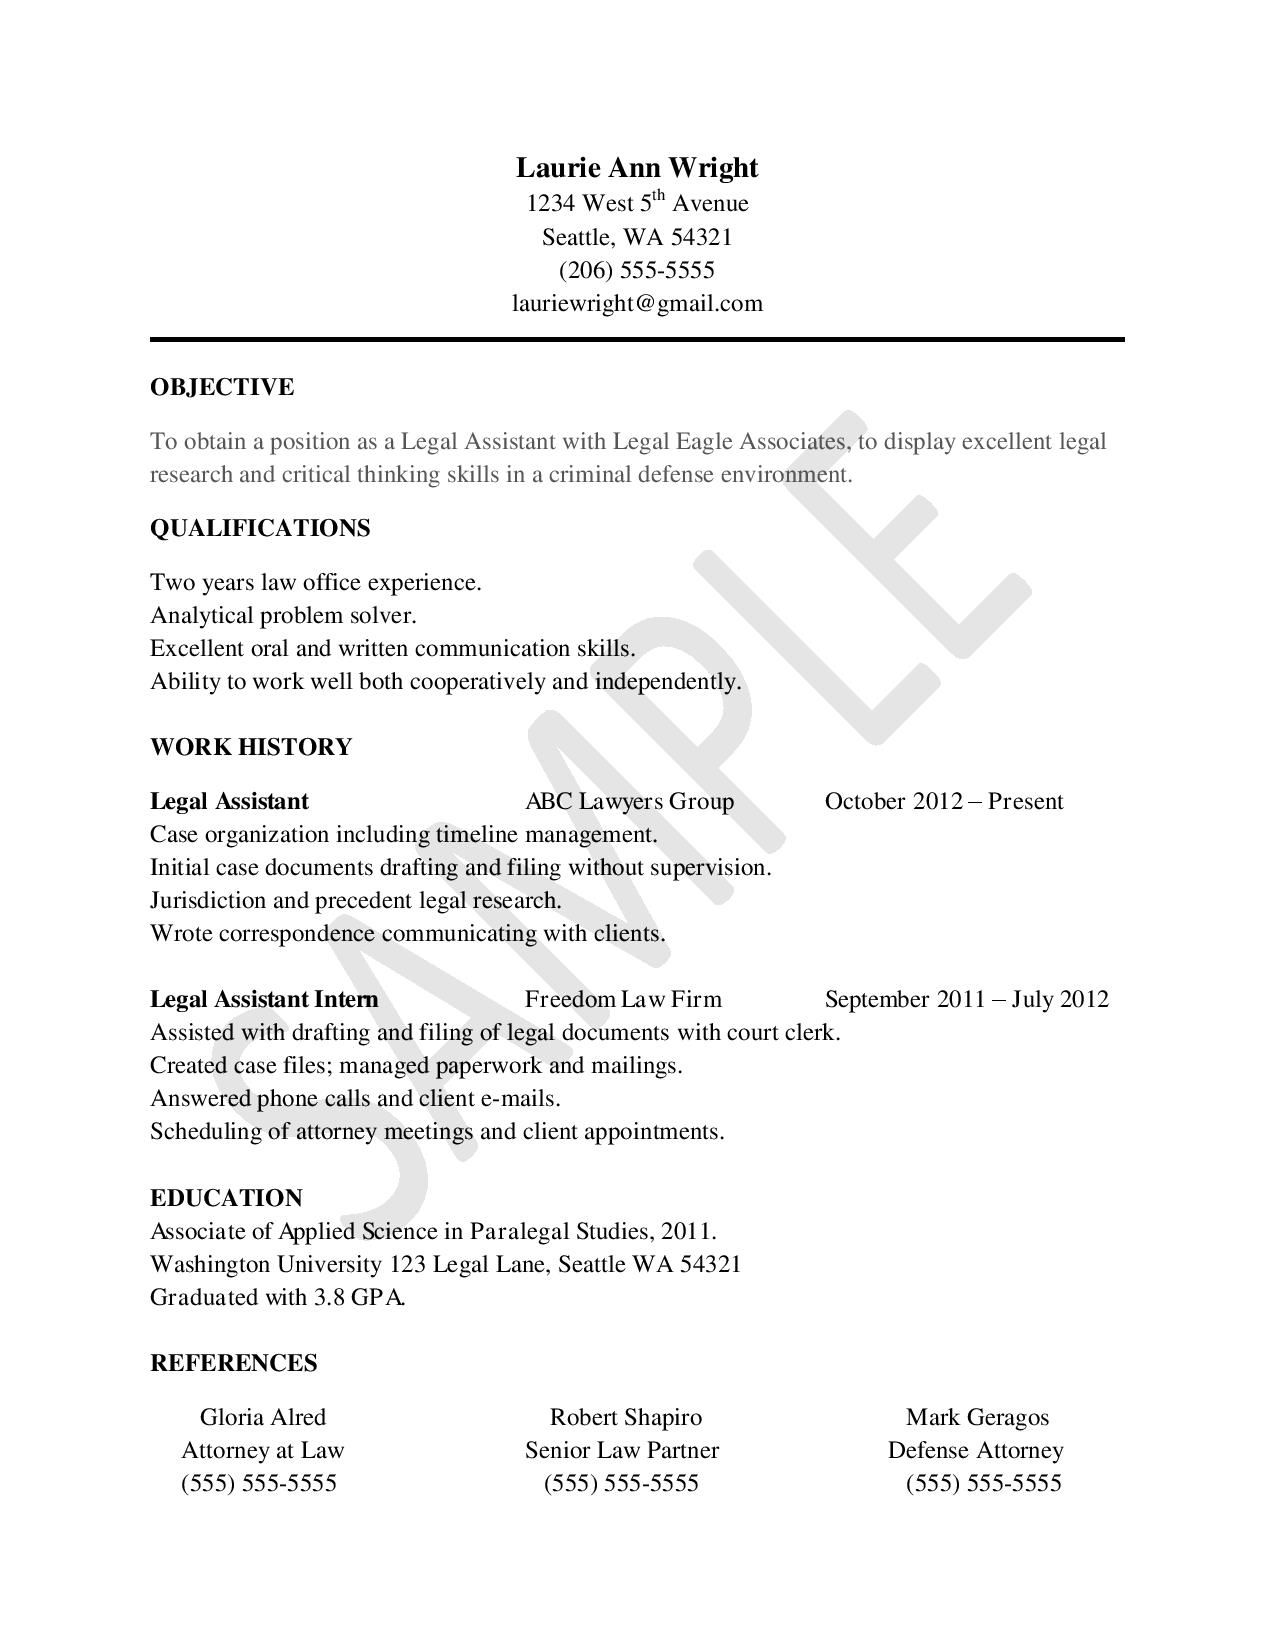 A Perfect Resume Example Sample Resume For Legal Assistants  Legalassistant